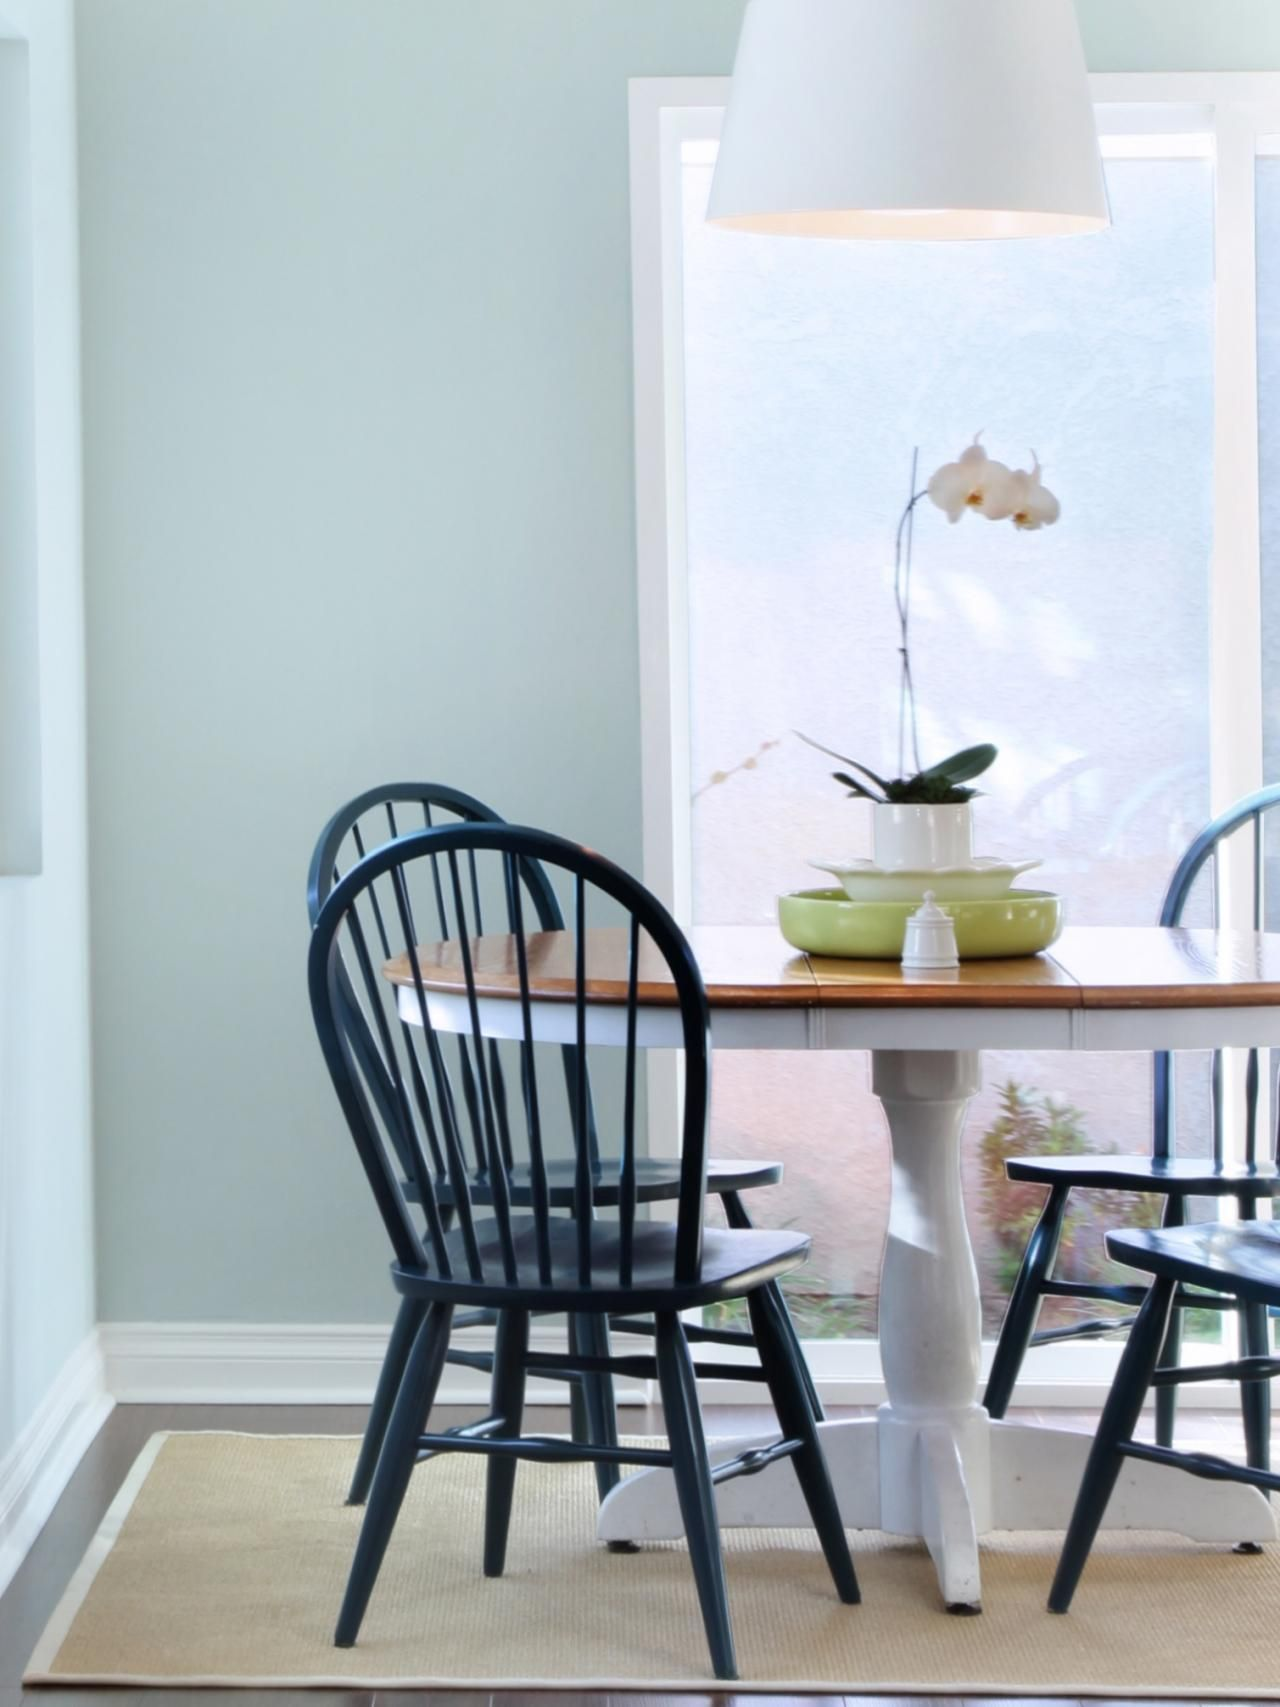 This cottage-inspired dining room is kept causal thanks to a painted wood table and black Windsor chairs. A large white pendant is a modern counterpoint to the traditional chairs and sturdy table.